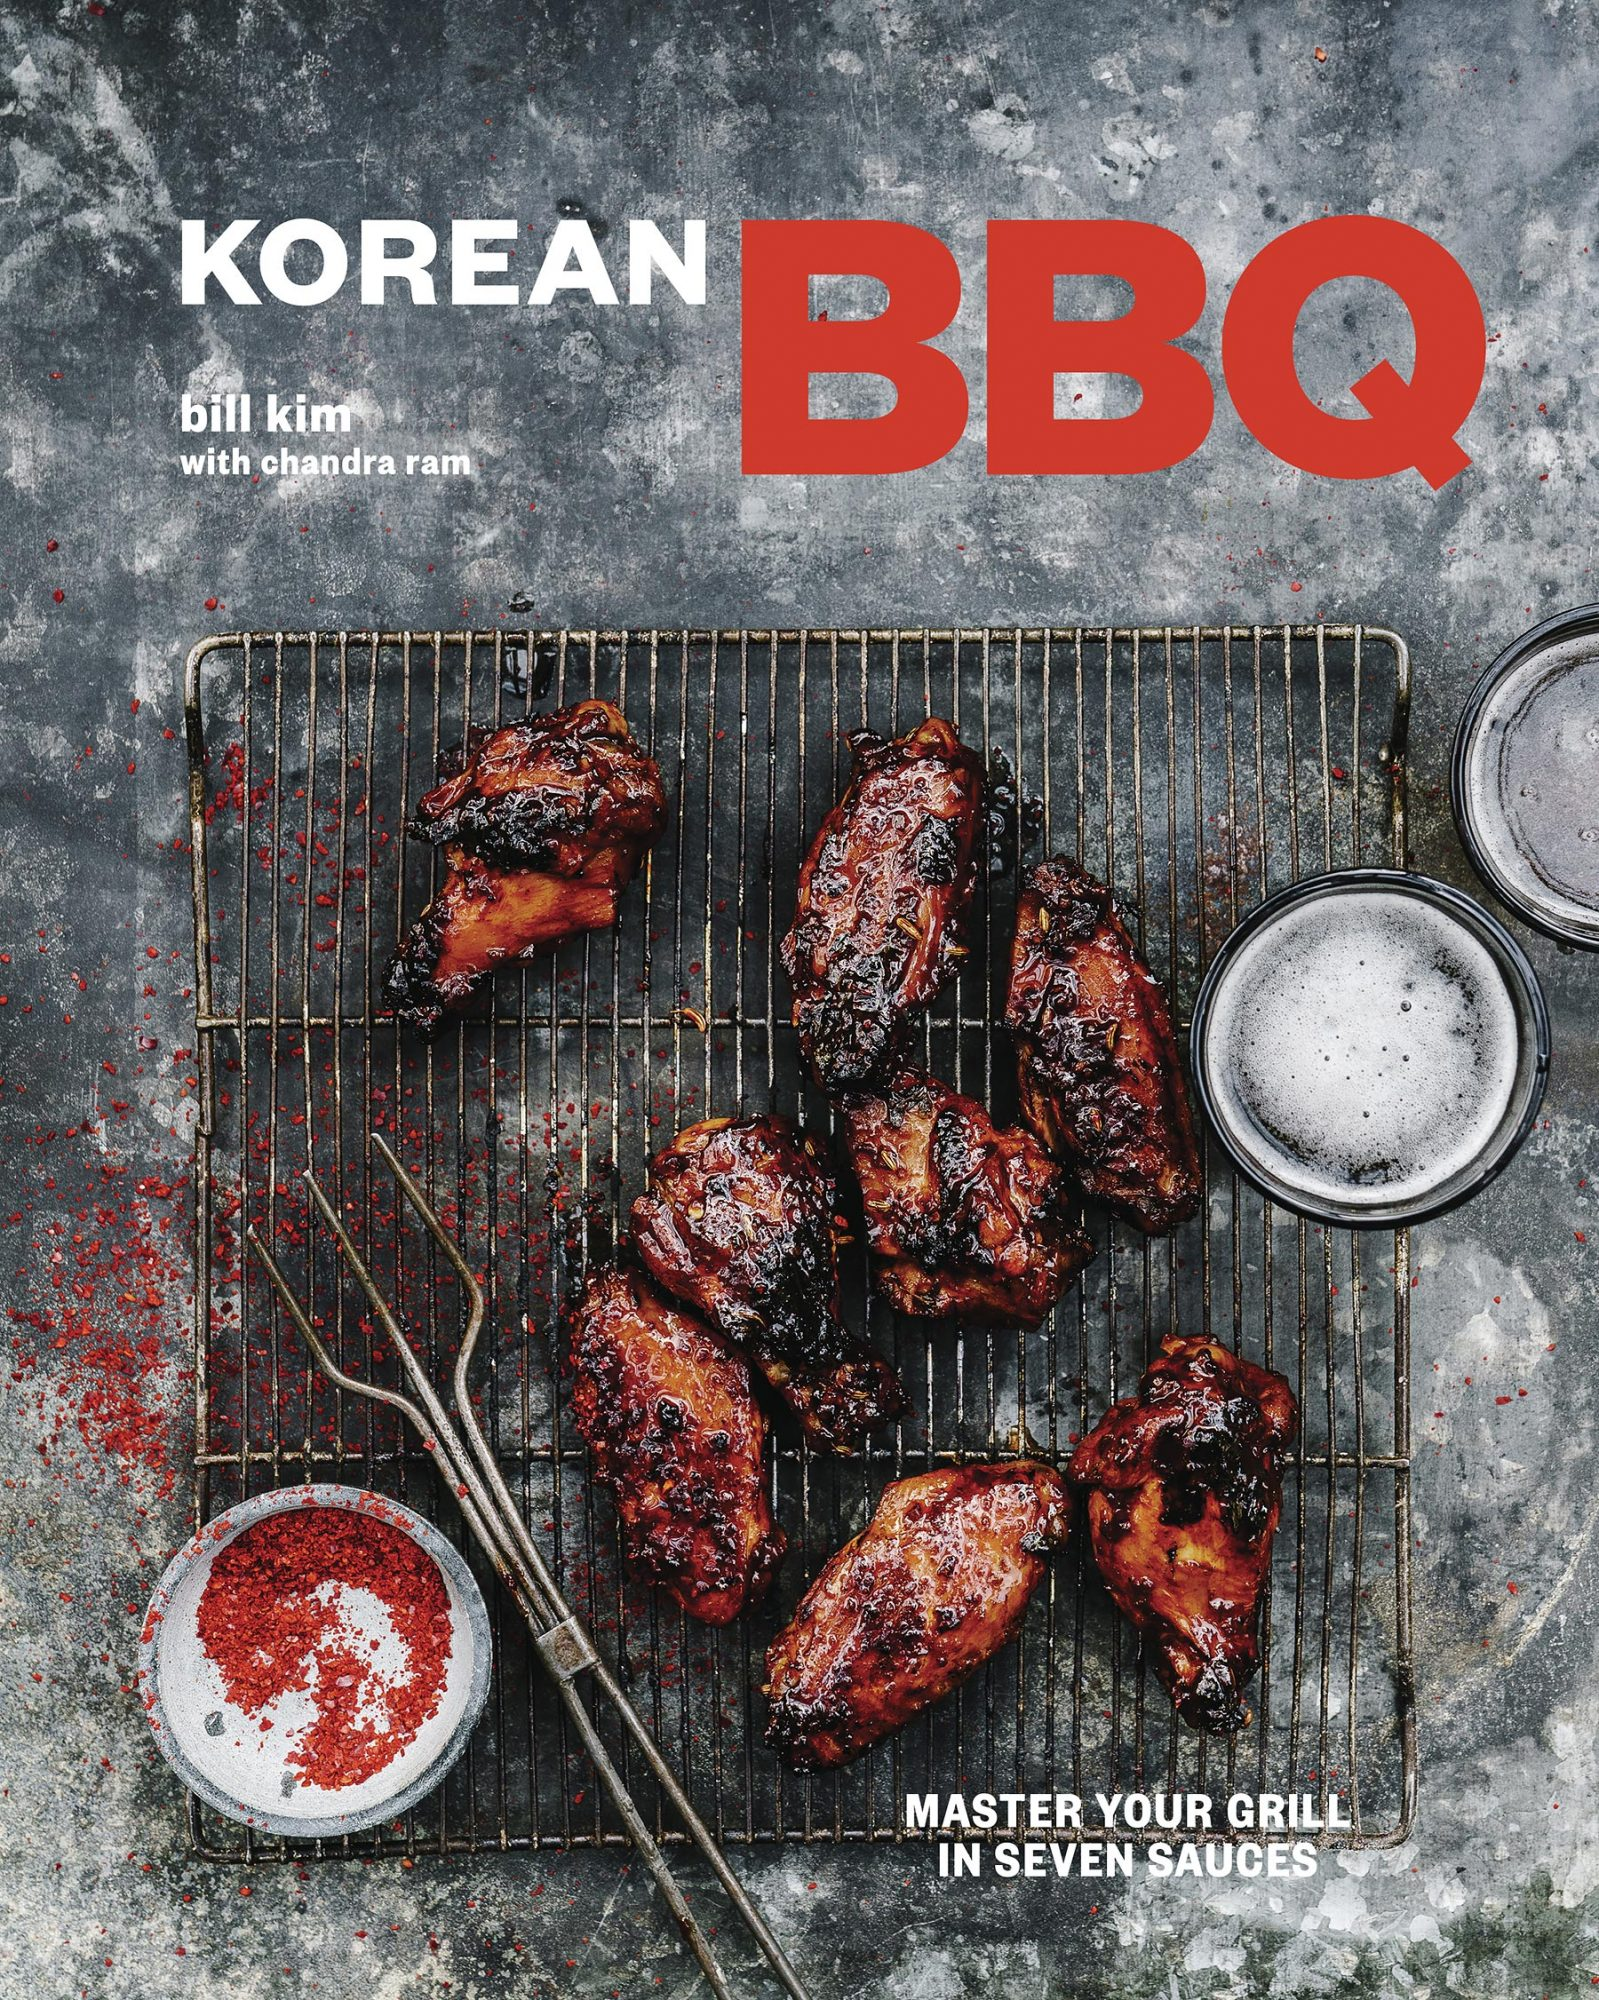 Korean BBQ, by Bill Kim with Chandra Ram